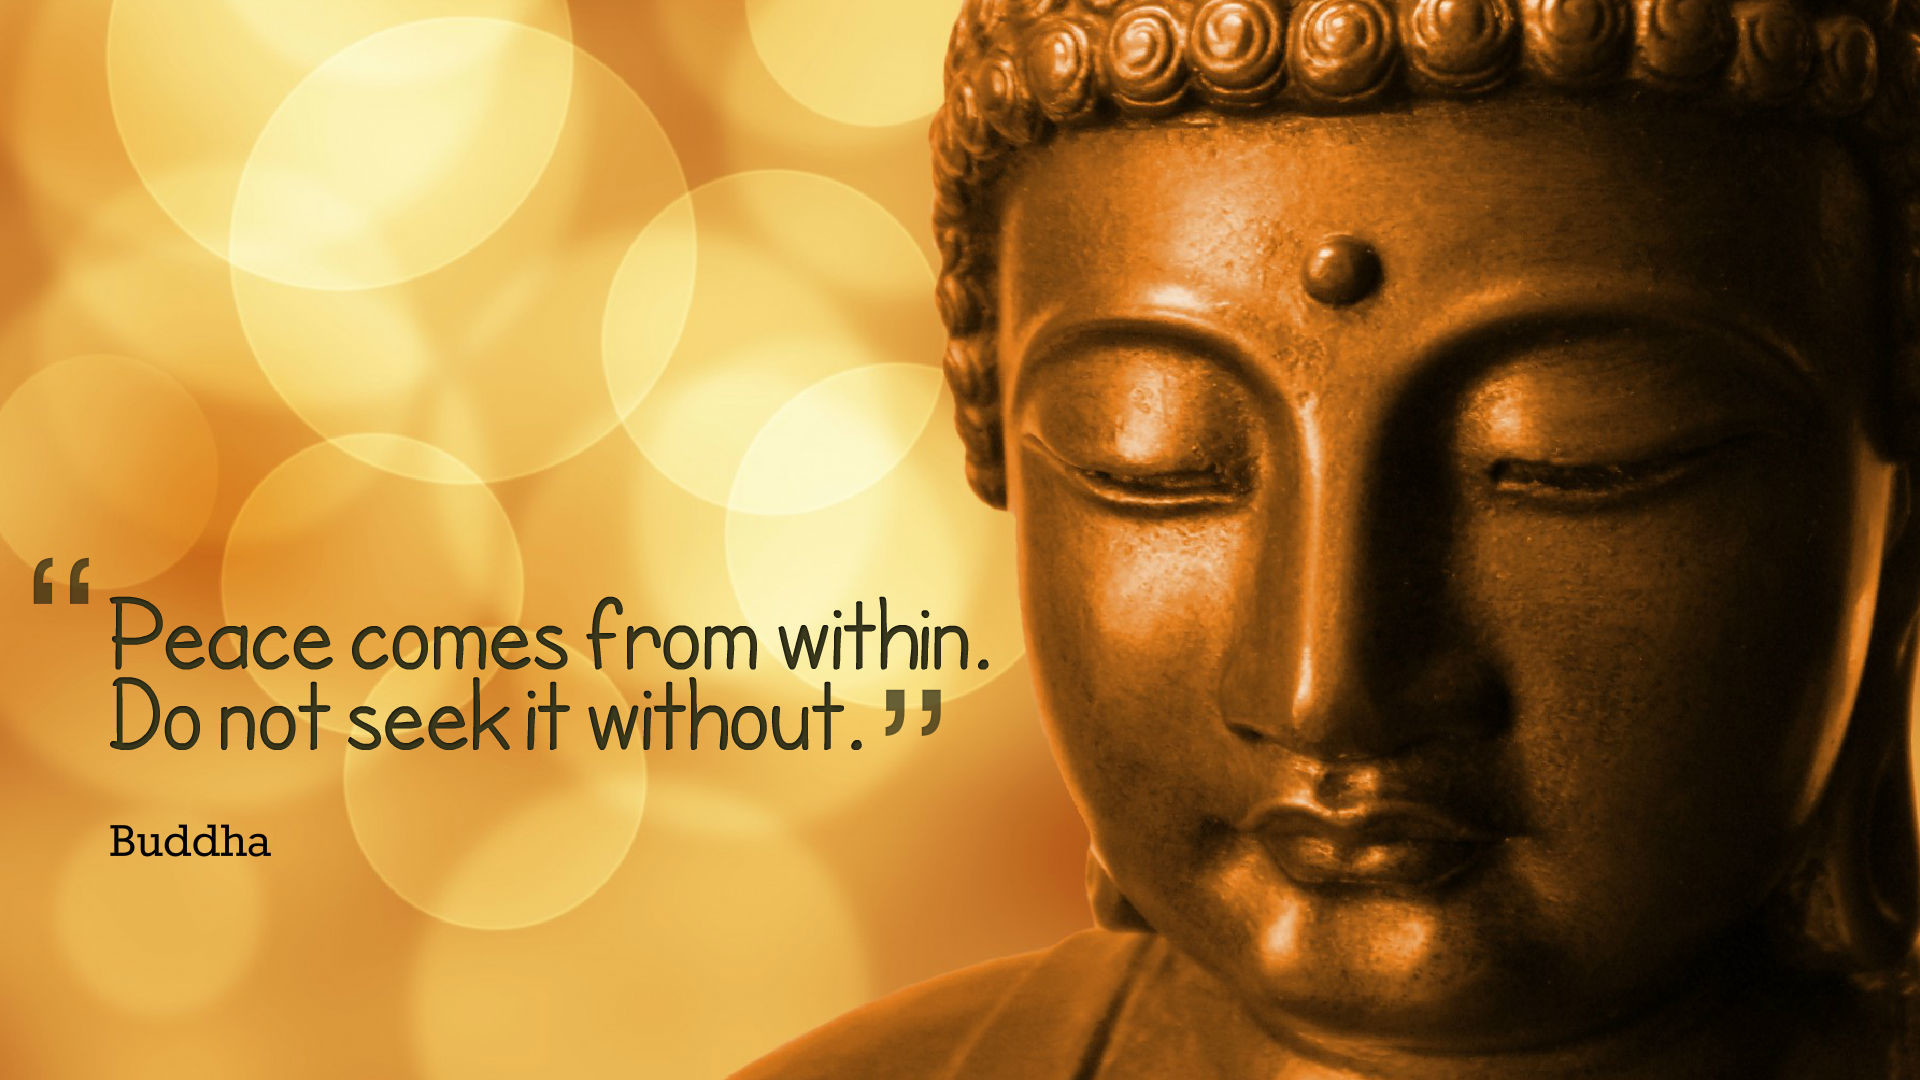 Buddha wallpaper 1920x1080 79 images - Hd wallpapers for laptop with quotes ...